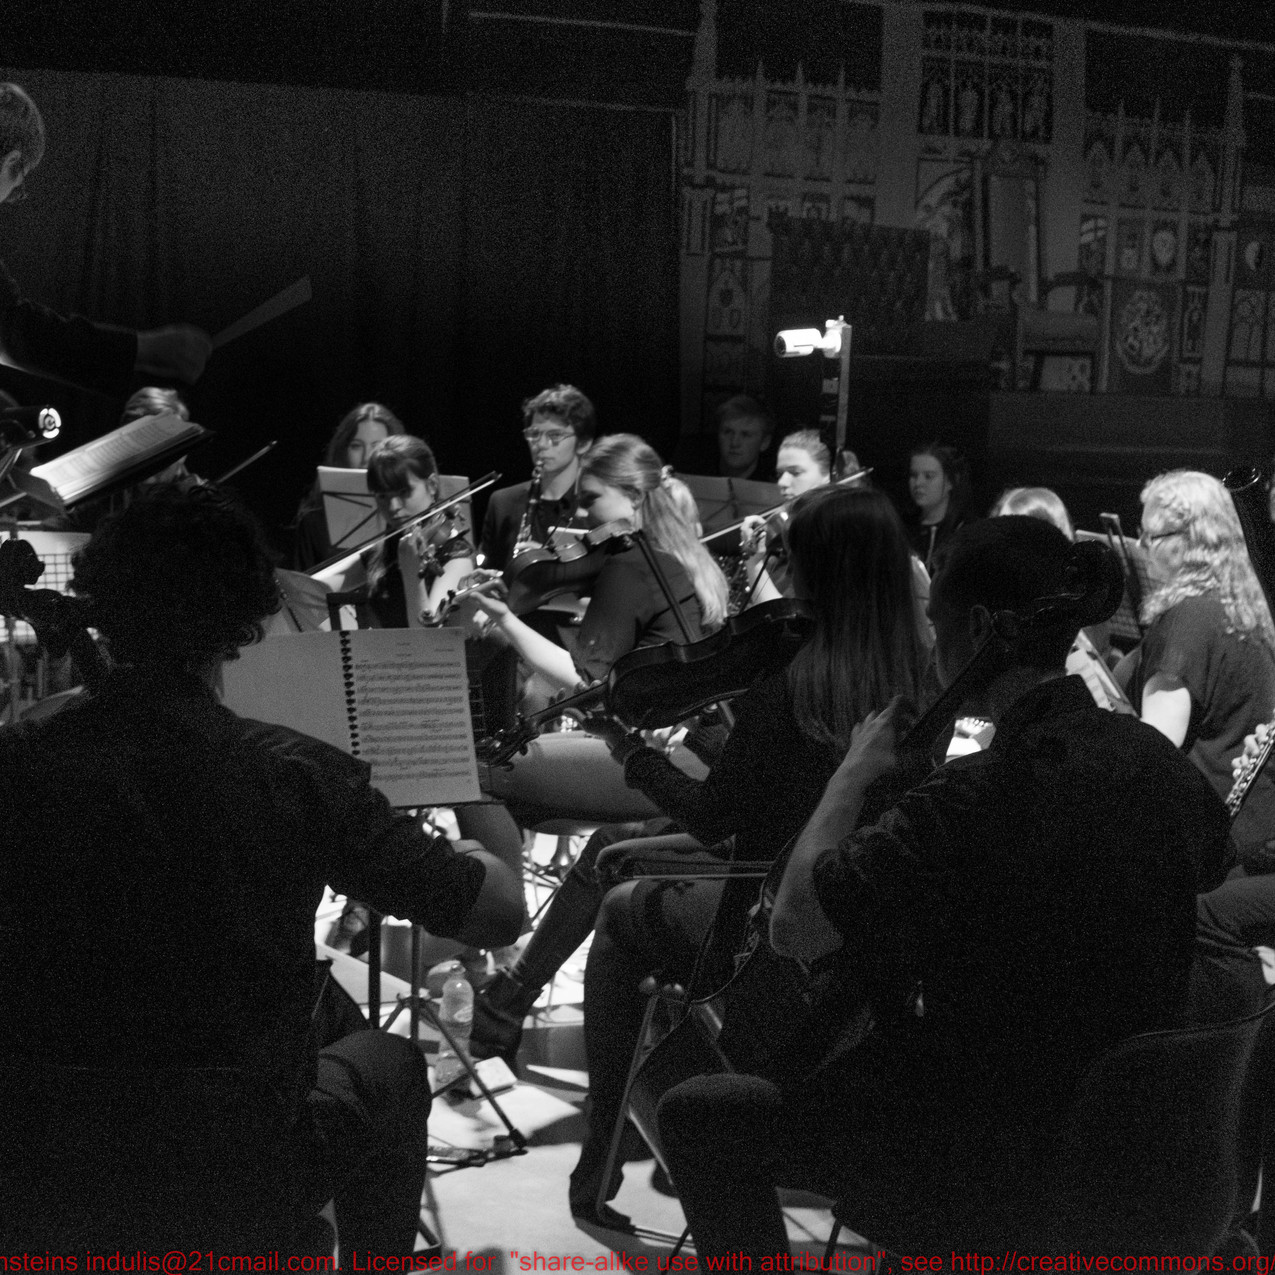 Orchestra conducted by Joe Hearson.